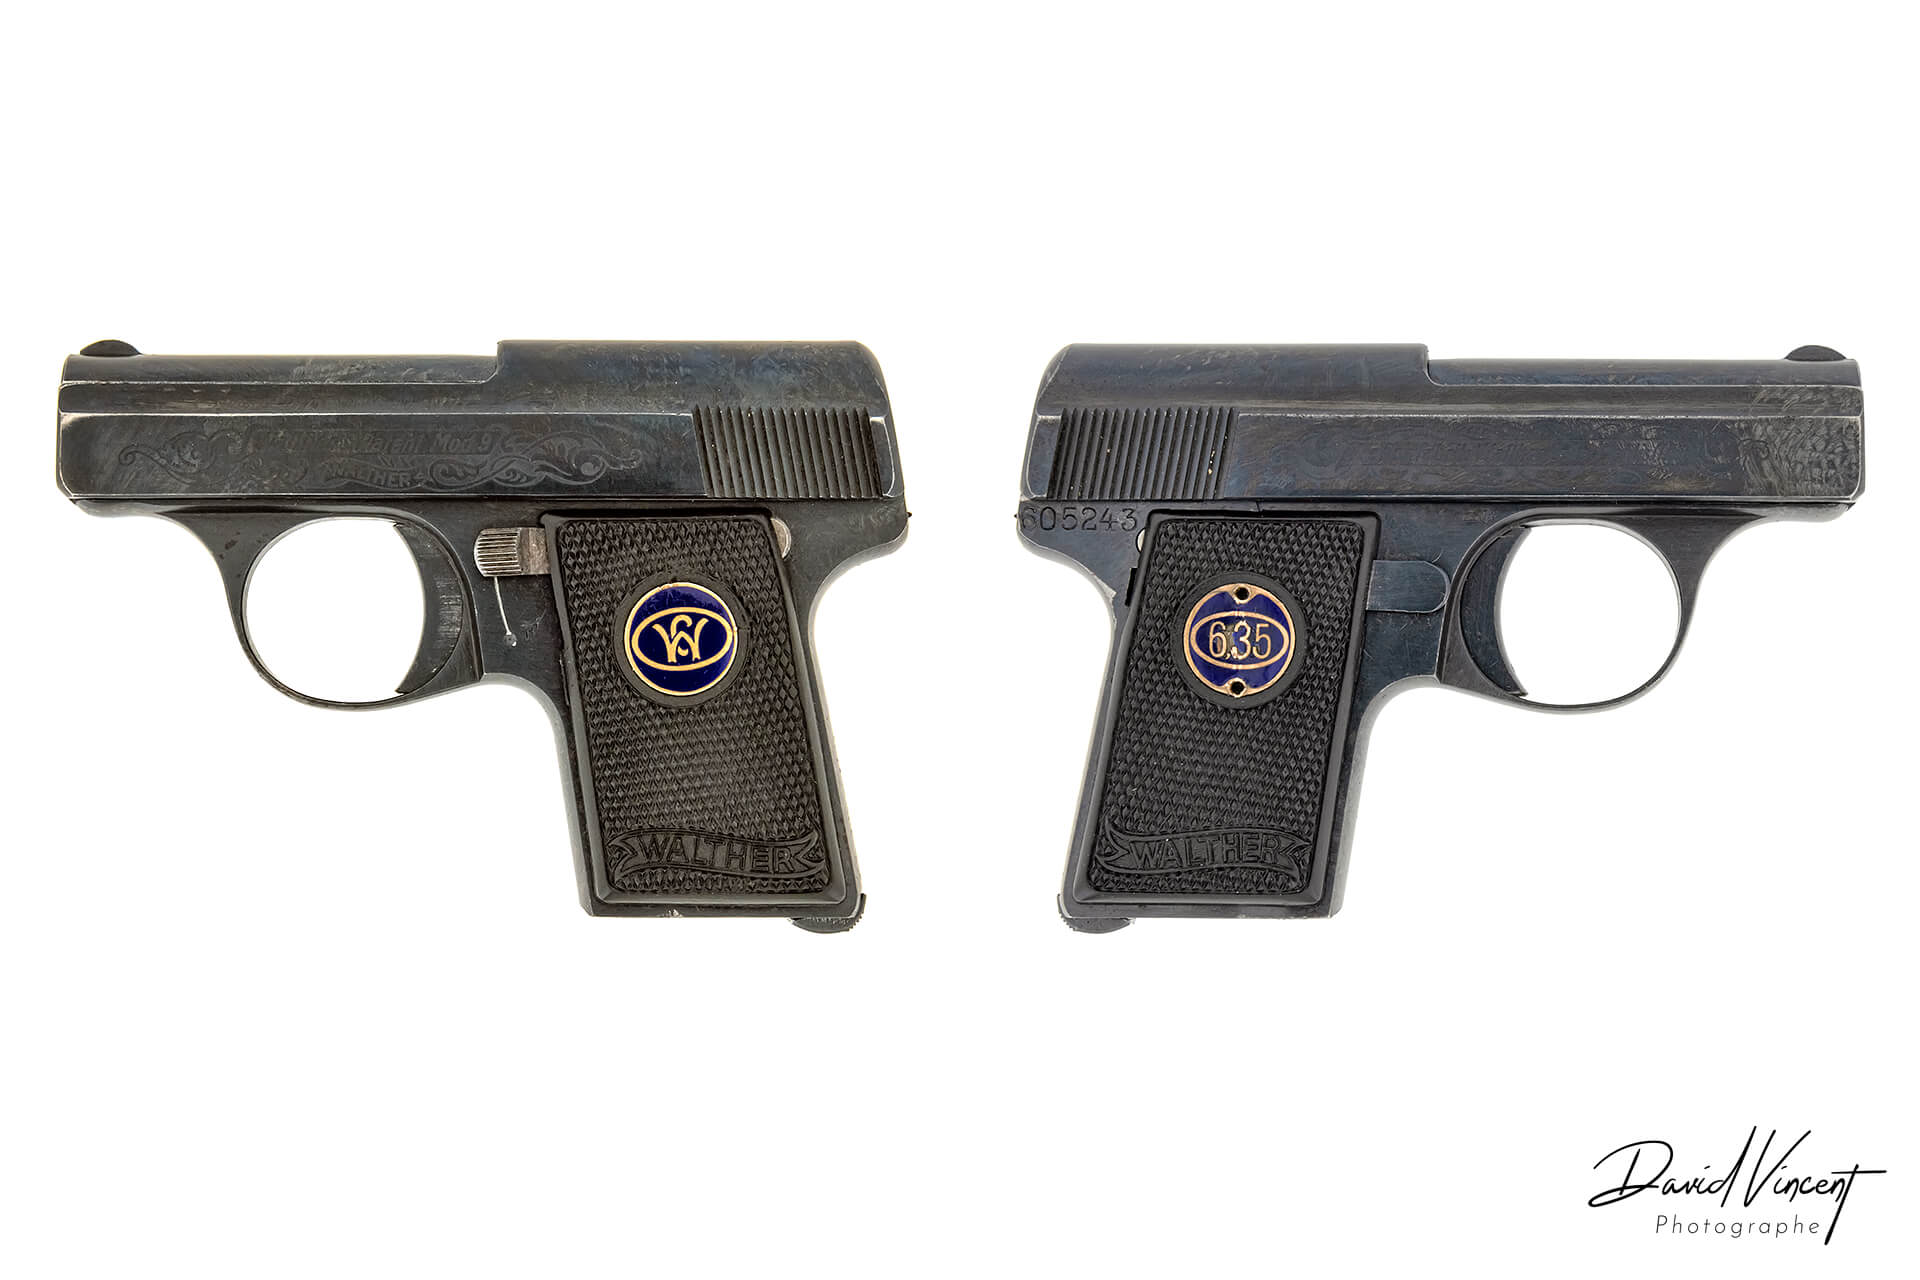 Walther model 9 Firearms Photographer